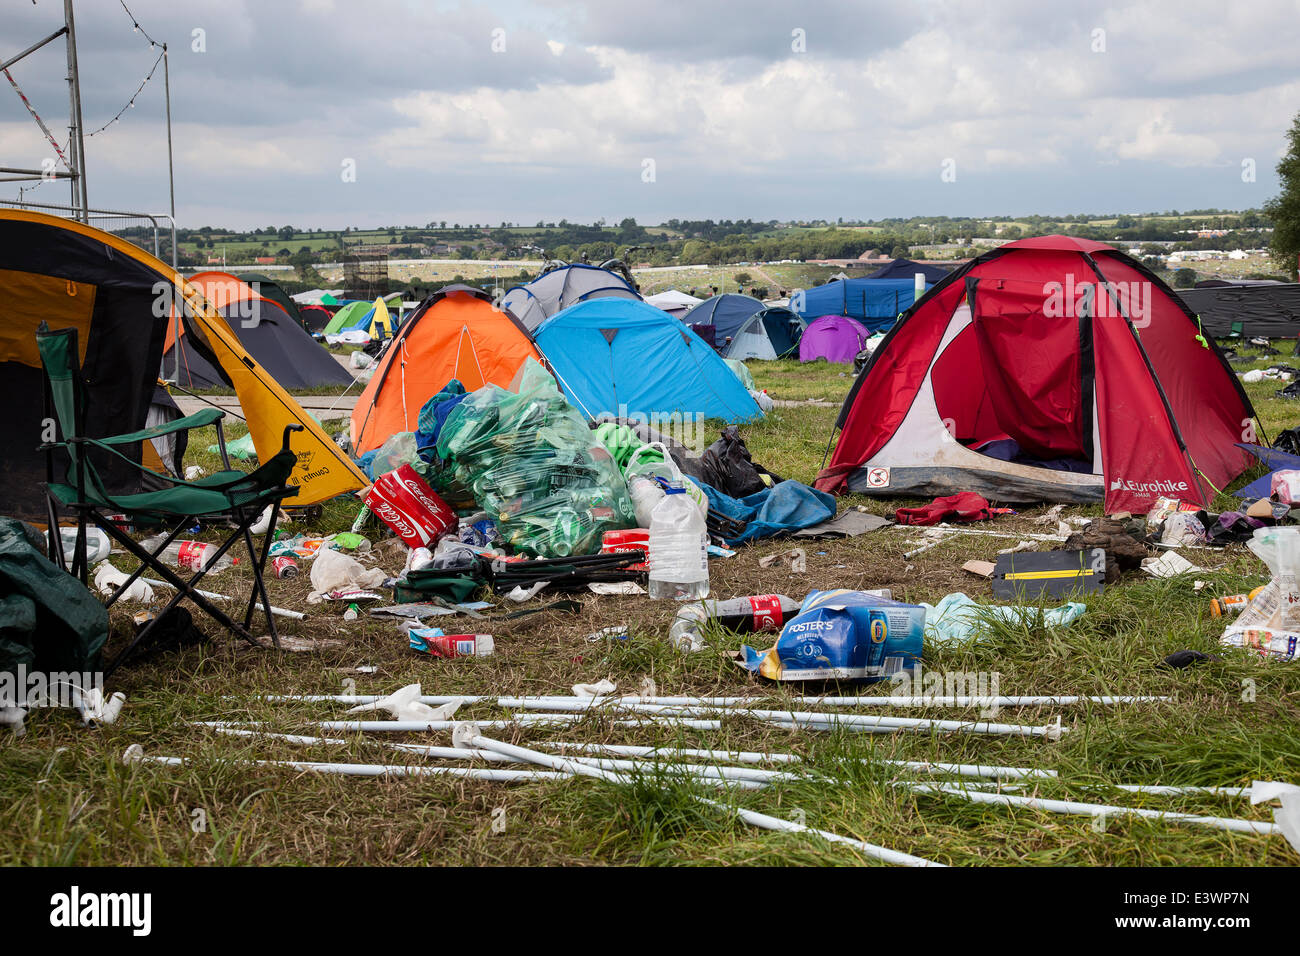 30th June 2014. Tents and rubbish left by festival goers in the c&ing fields of Glastonbury Festival. Credit Redorbital Photography/Alamy Live News & Glastonbury UK. 30th June 2014. Tents and rubbish left by ...